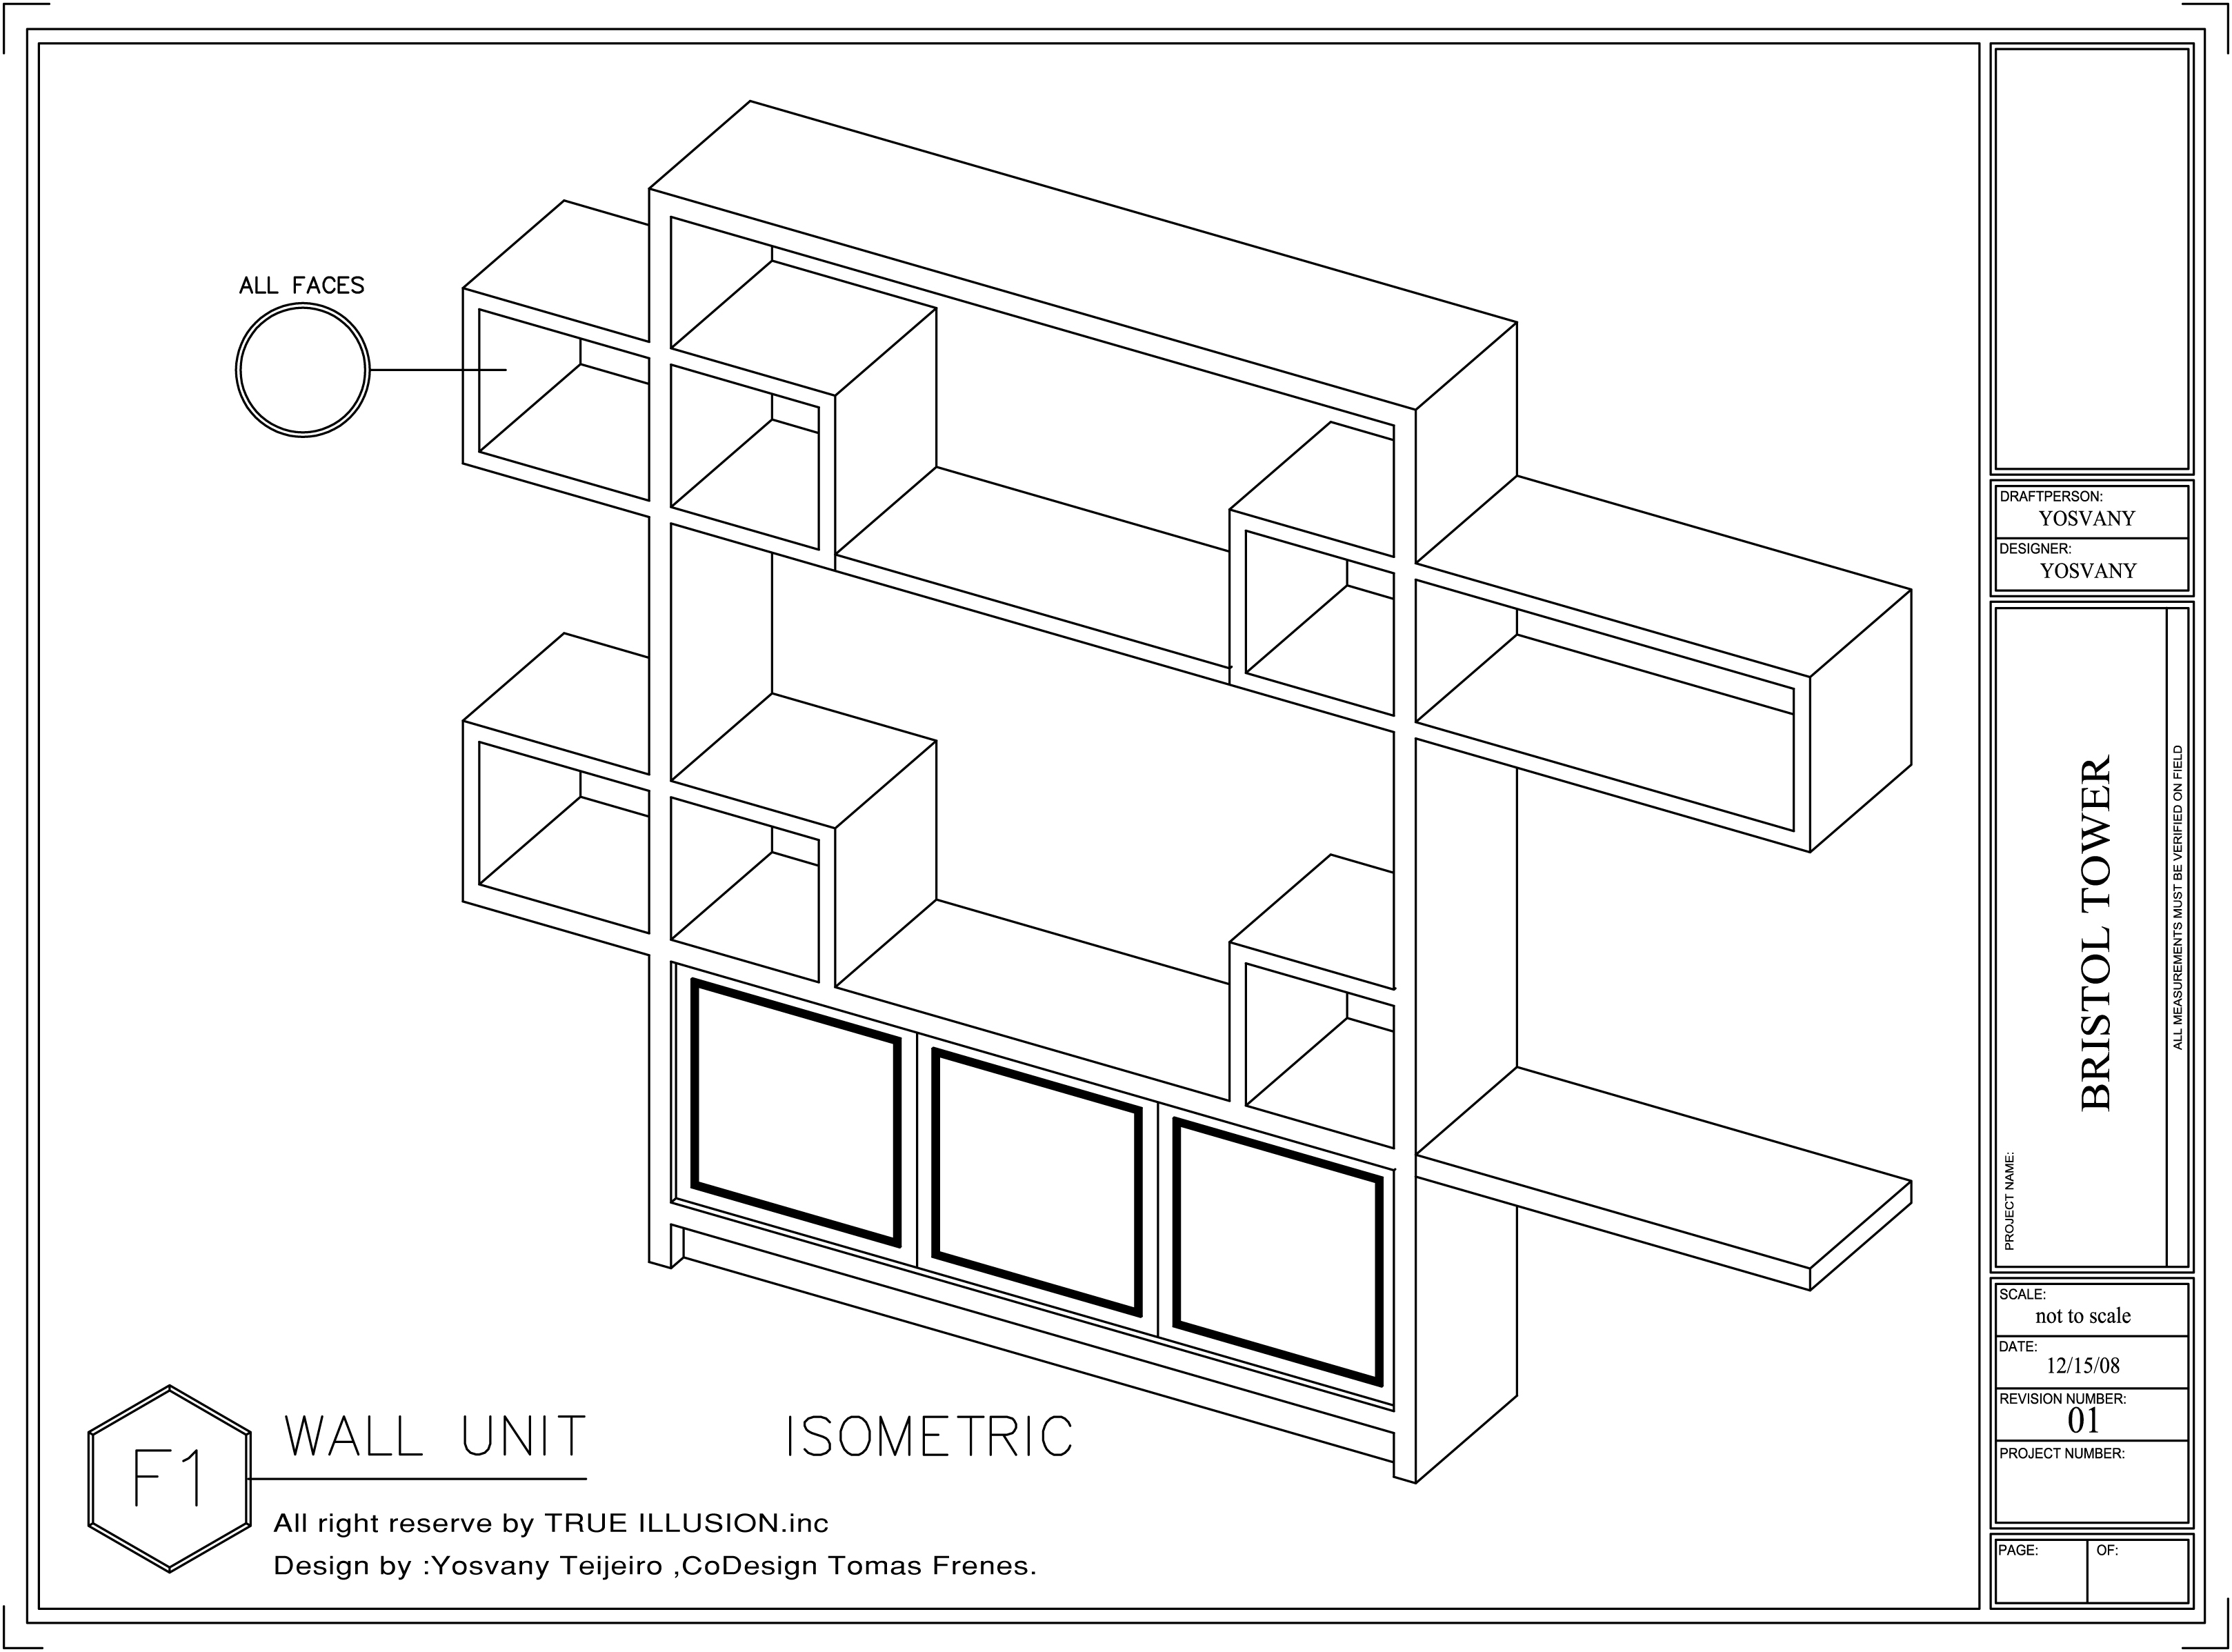 wall unit  shop drawings  bristol tower miami  design by